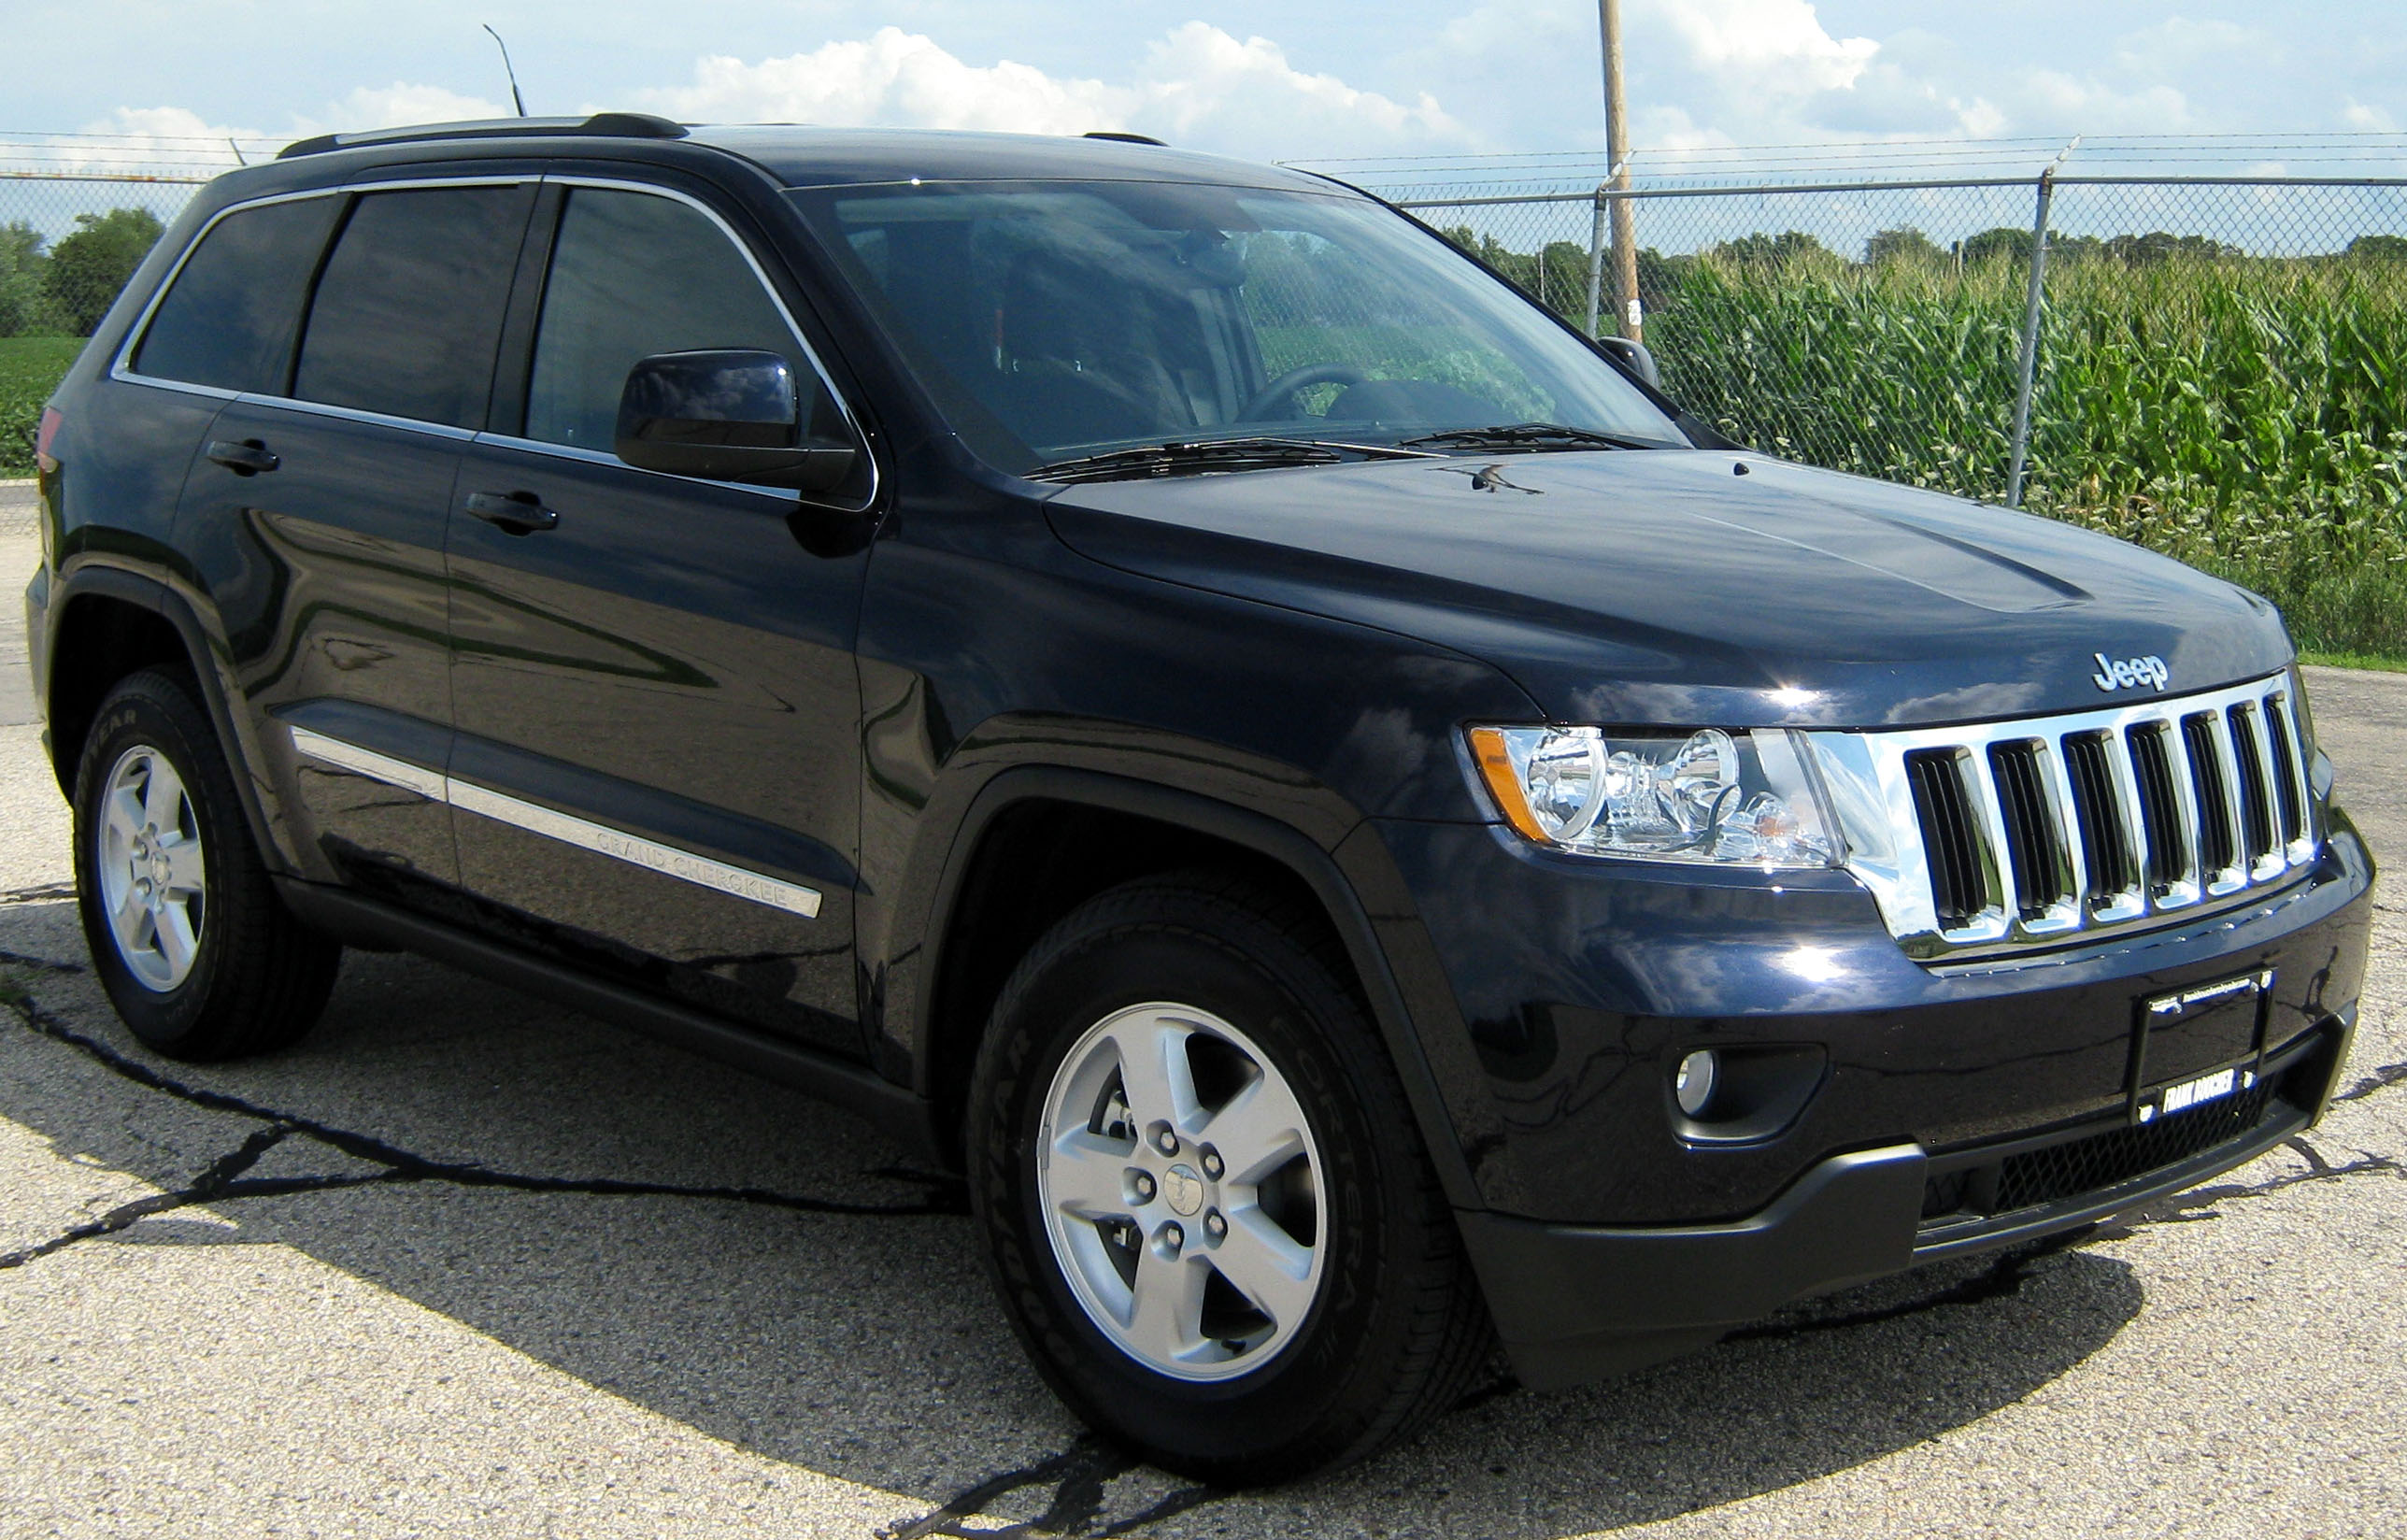 Jeep Grand Cherokee Wk2 Wikipedia